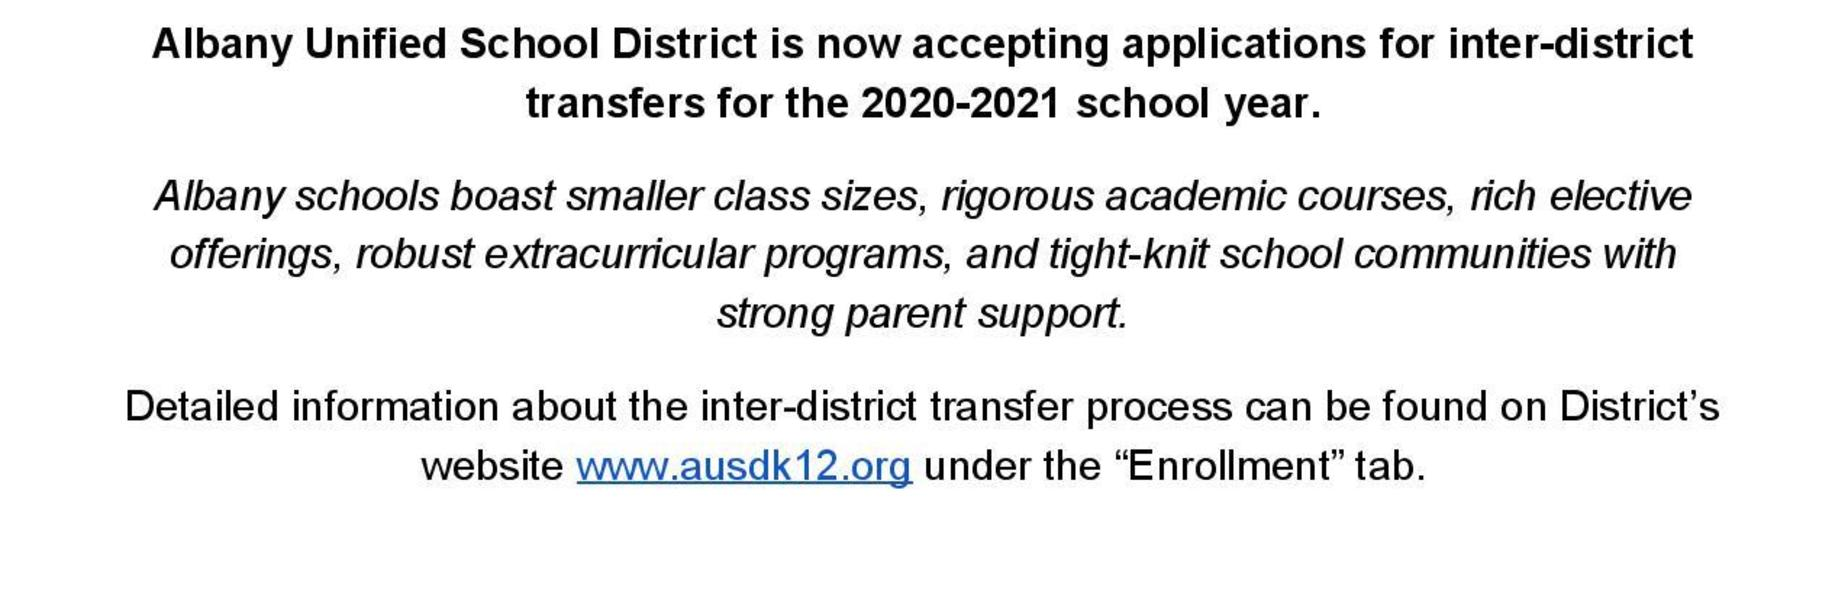 AUSD is now accepting inter-district applications for the 2020-2021 school year